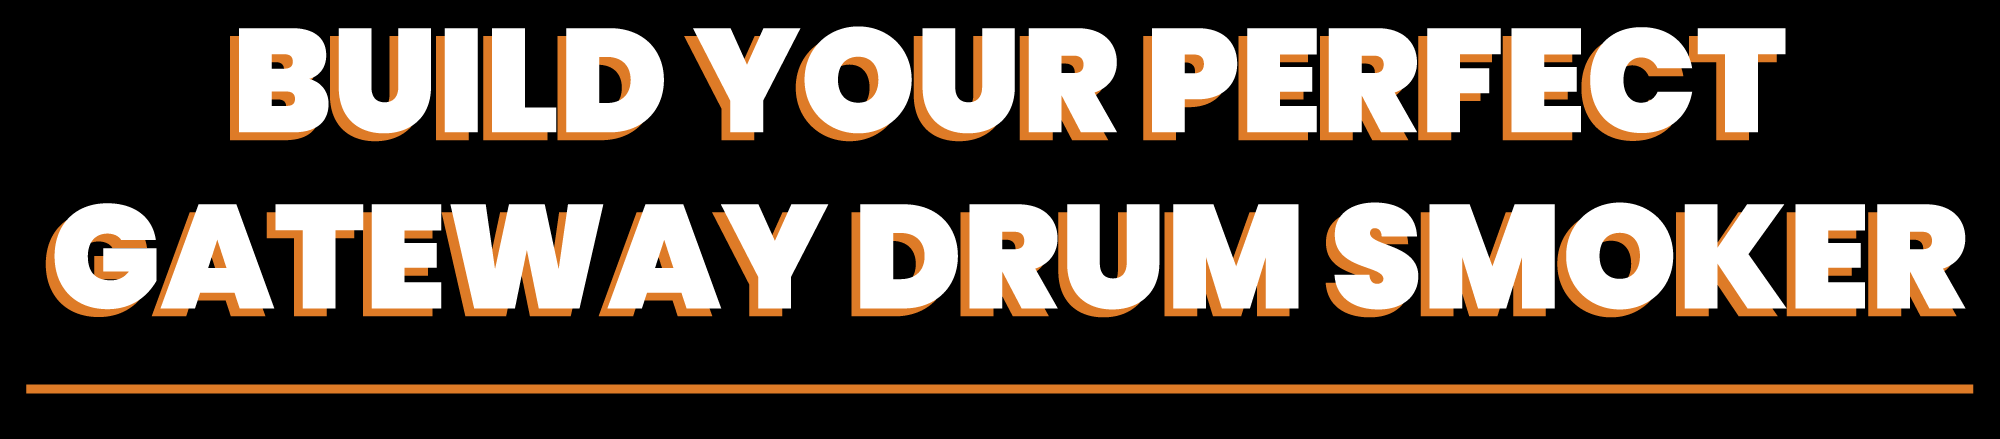 Build Your Perfect Gateway Drum Smoker